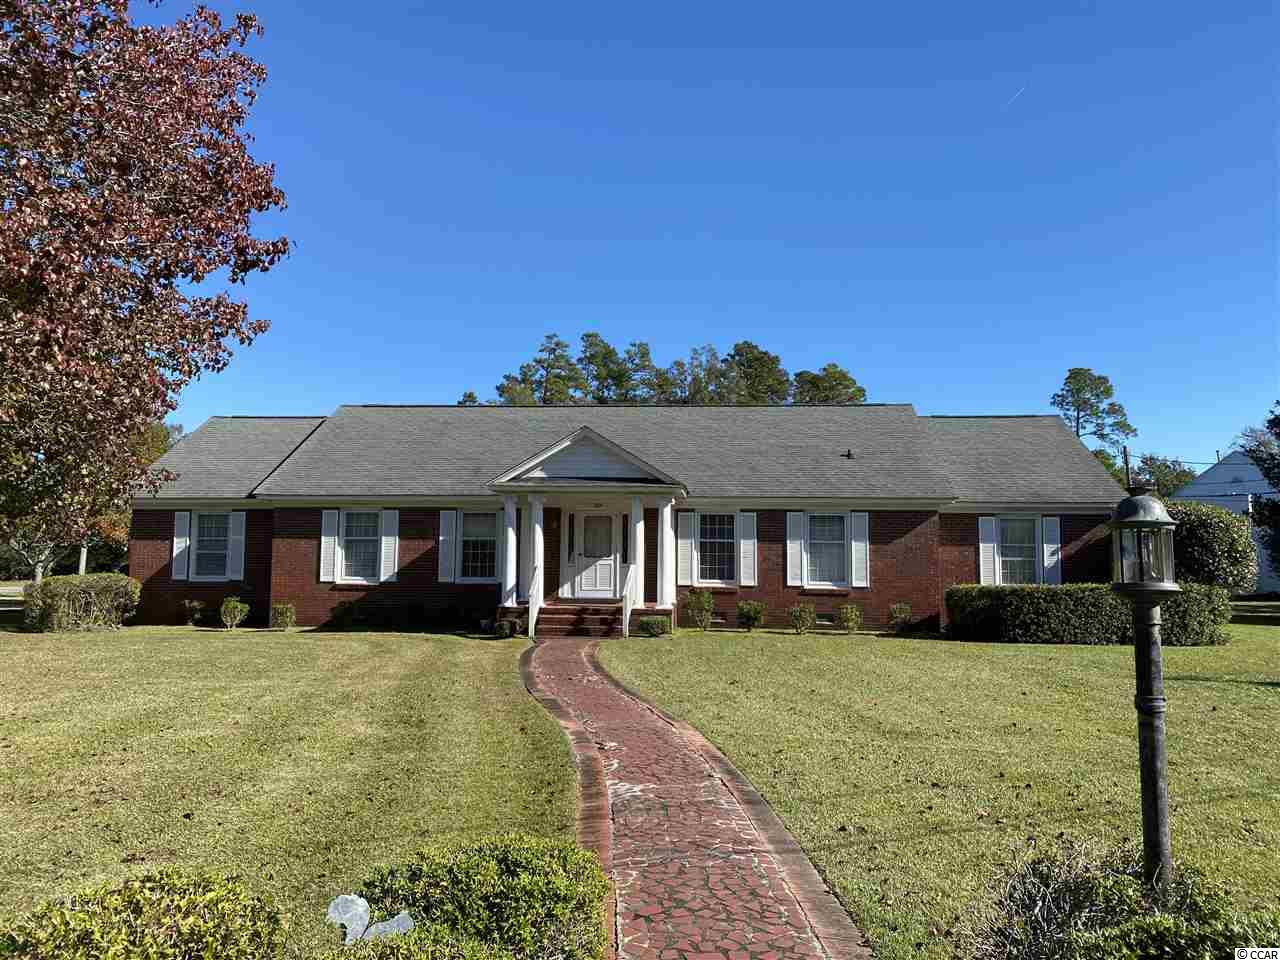 Attention to all those who have been looking for the older home to remodel and make it a show place. Endless possibilities with this ideal location and size.  All brick on a large corner lot.  Located across the street from Conway Elementary School. Don't delay in coming to see this one.